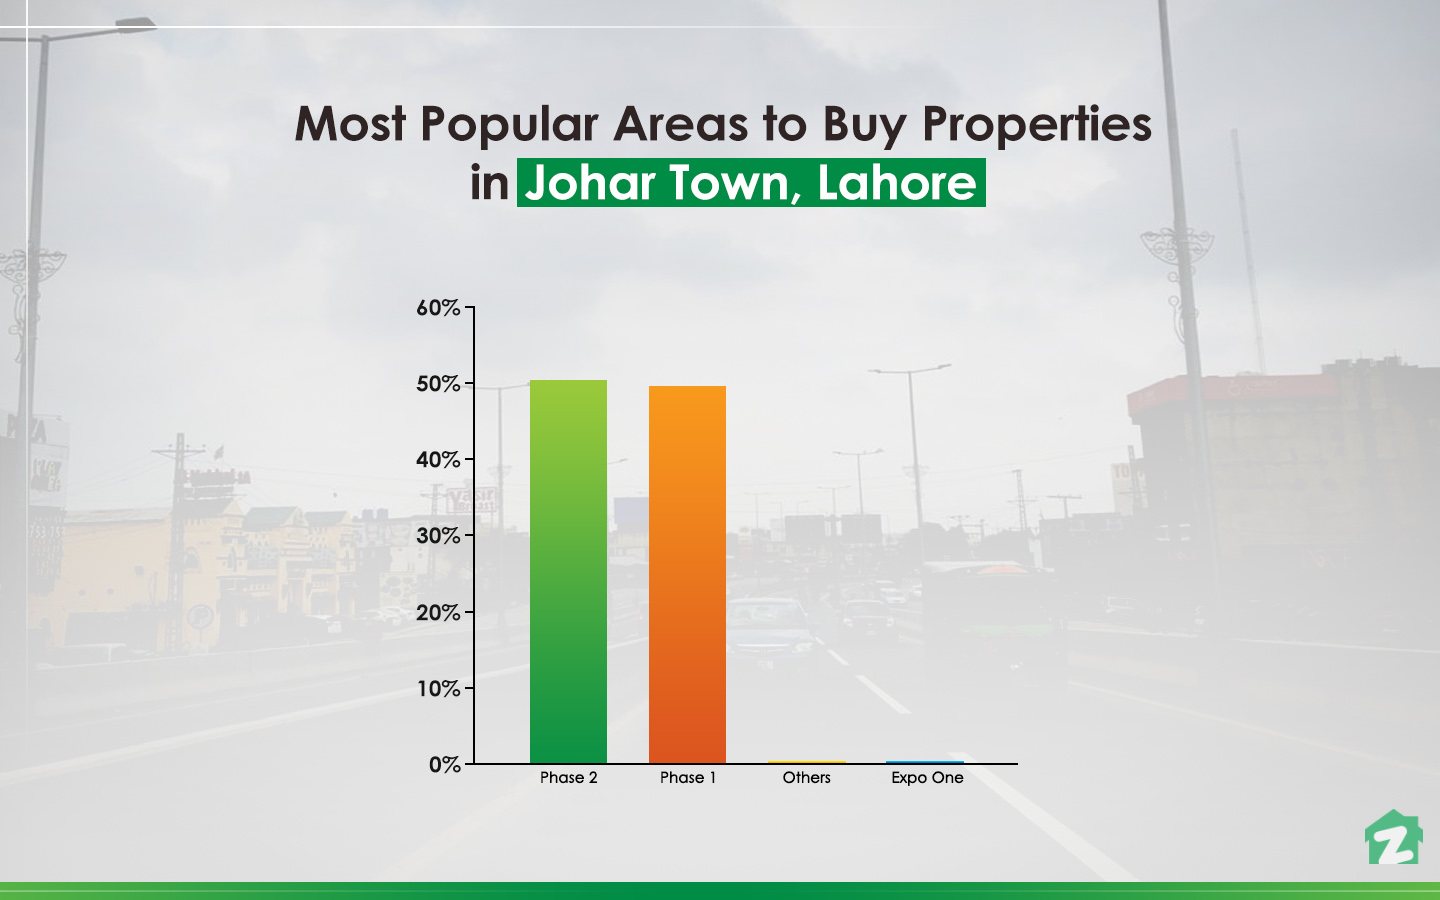 Phase 2 of Johar Town has higher buying trends.